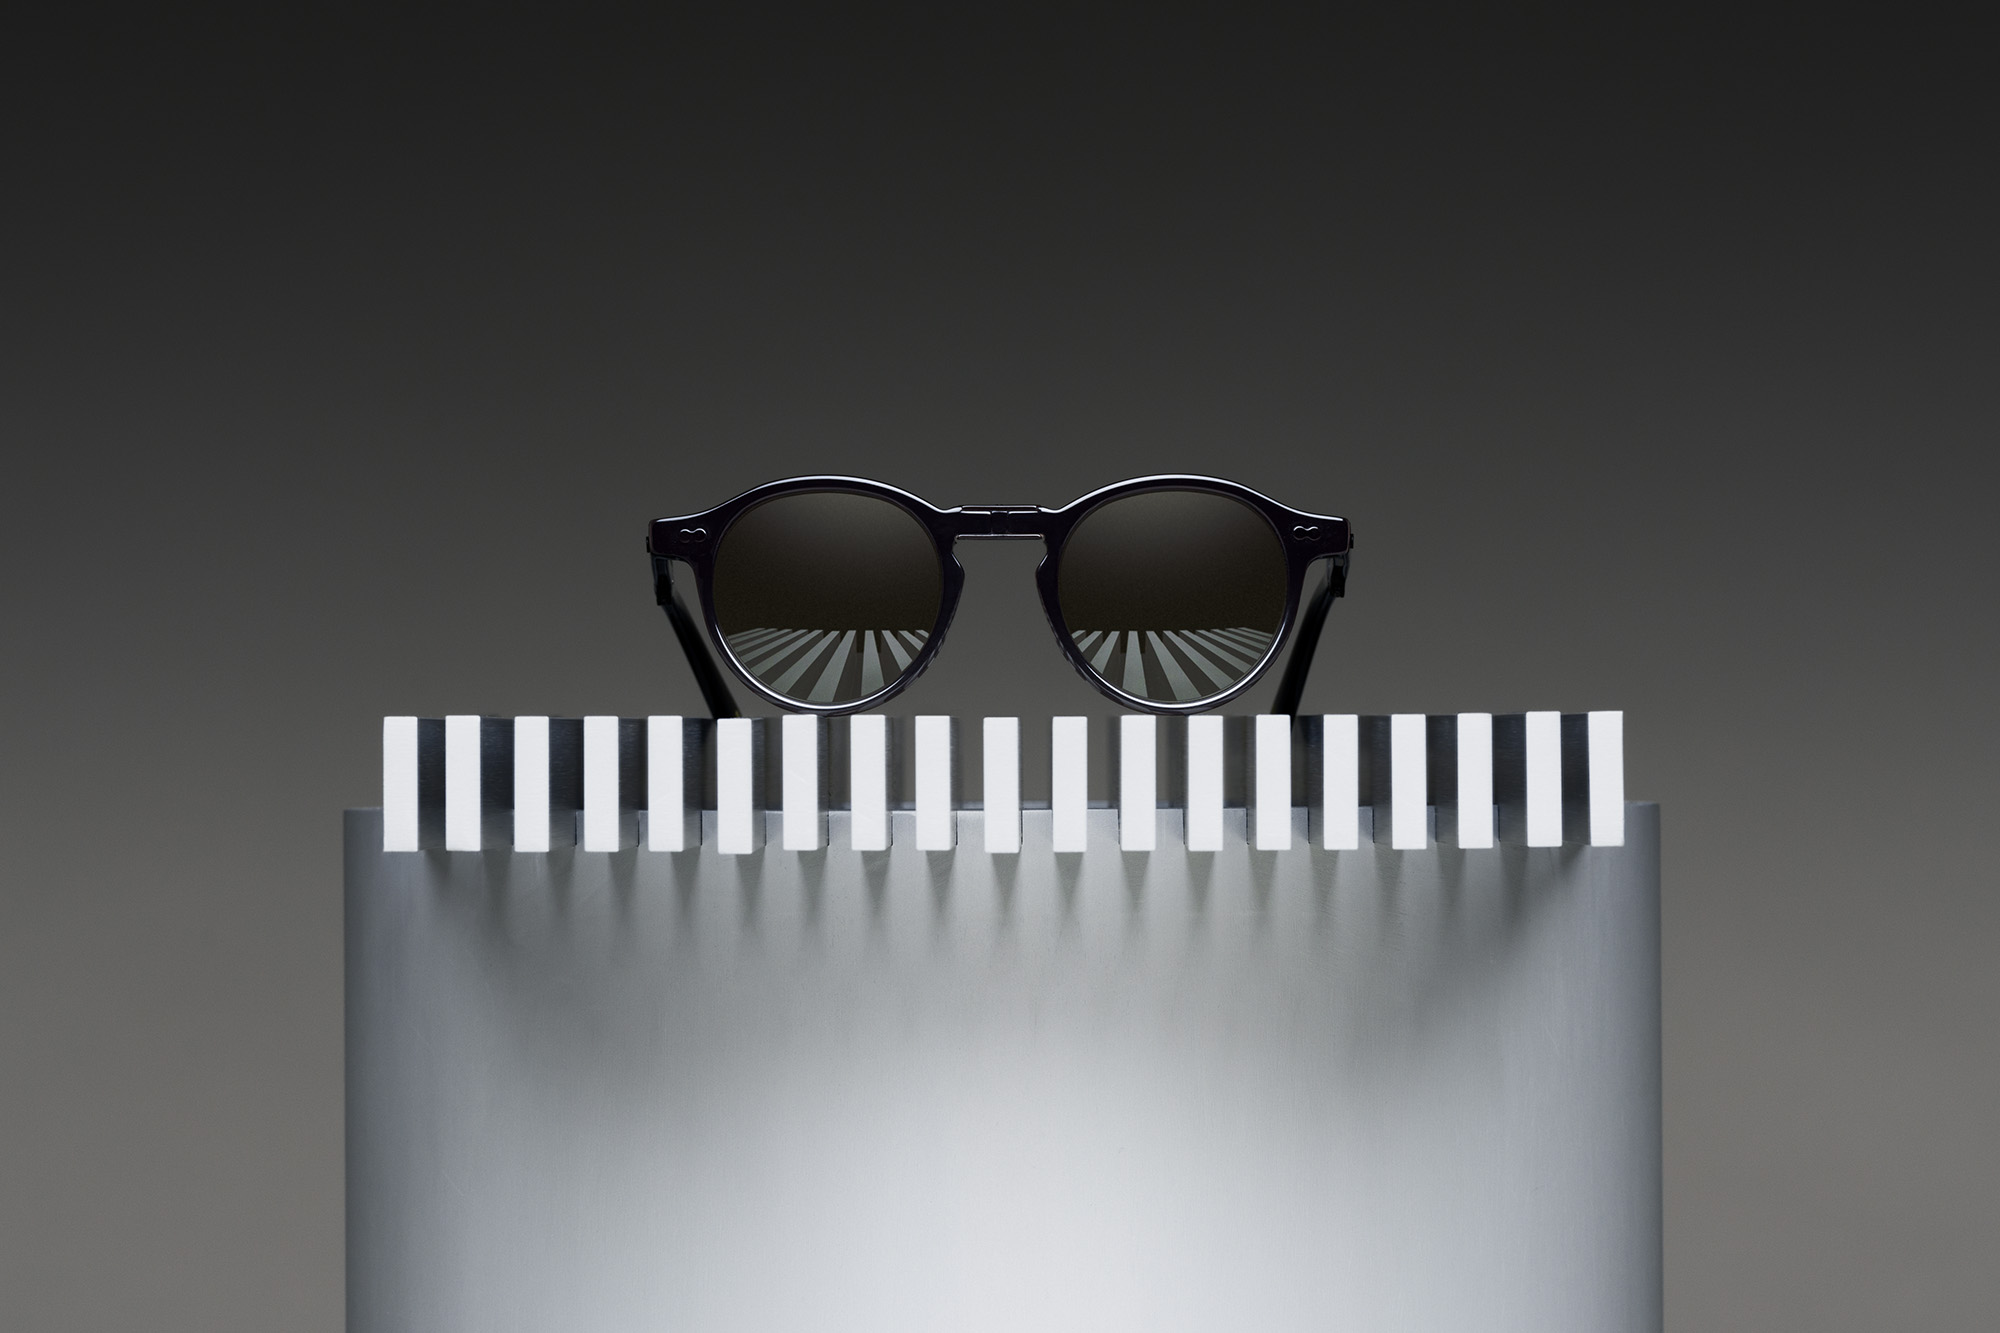 2bdc7b11709e5 Introducing a limited three-piece collection from MOSCOT and wings+horns